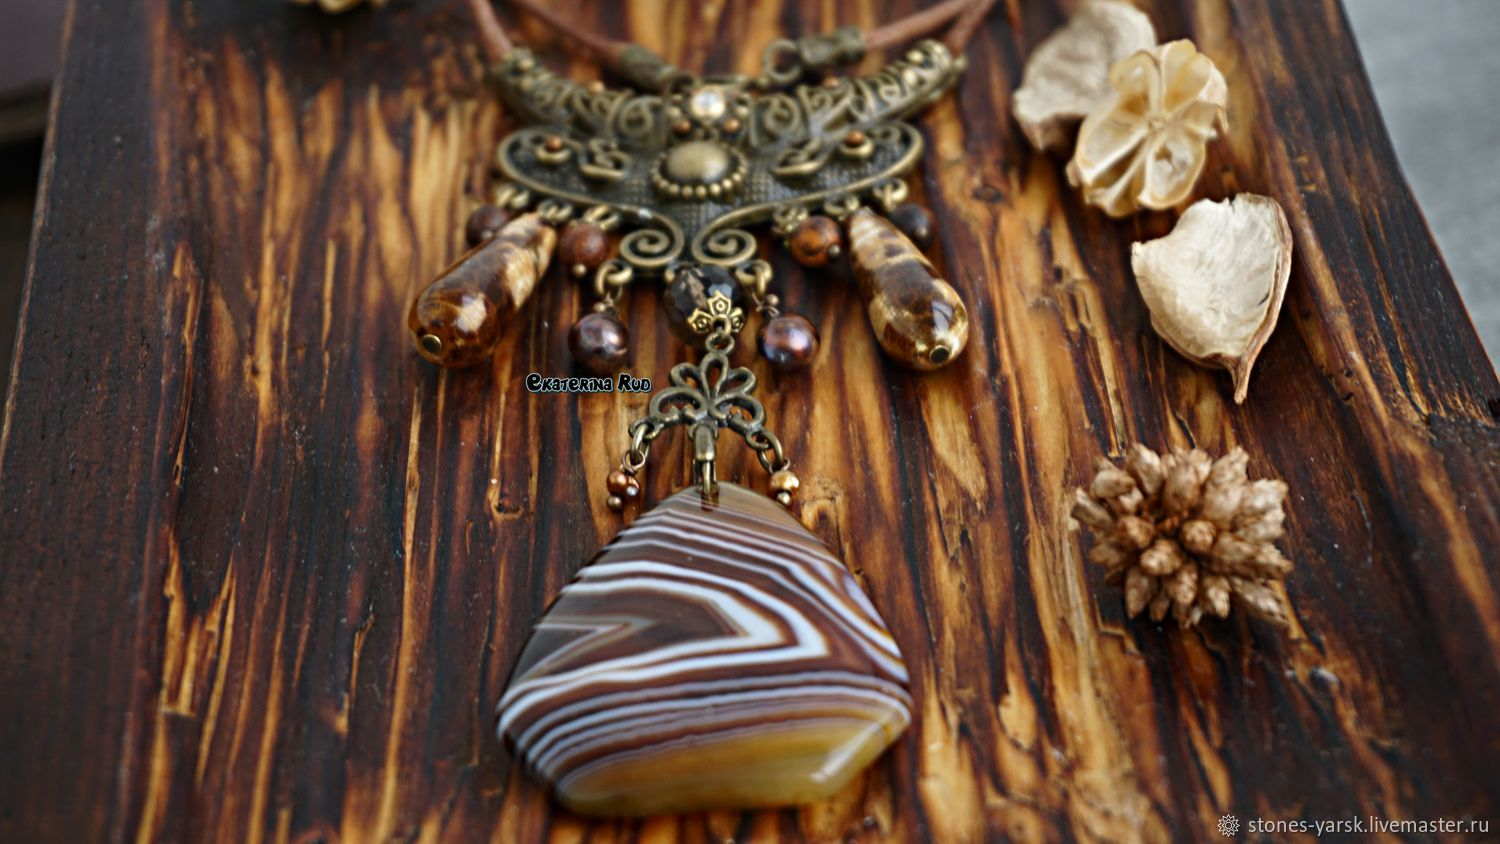 BOHO style necklace with agate pendant ' Nut-caramel', Jewelry Sets, Moscow,  Фото №1